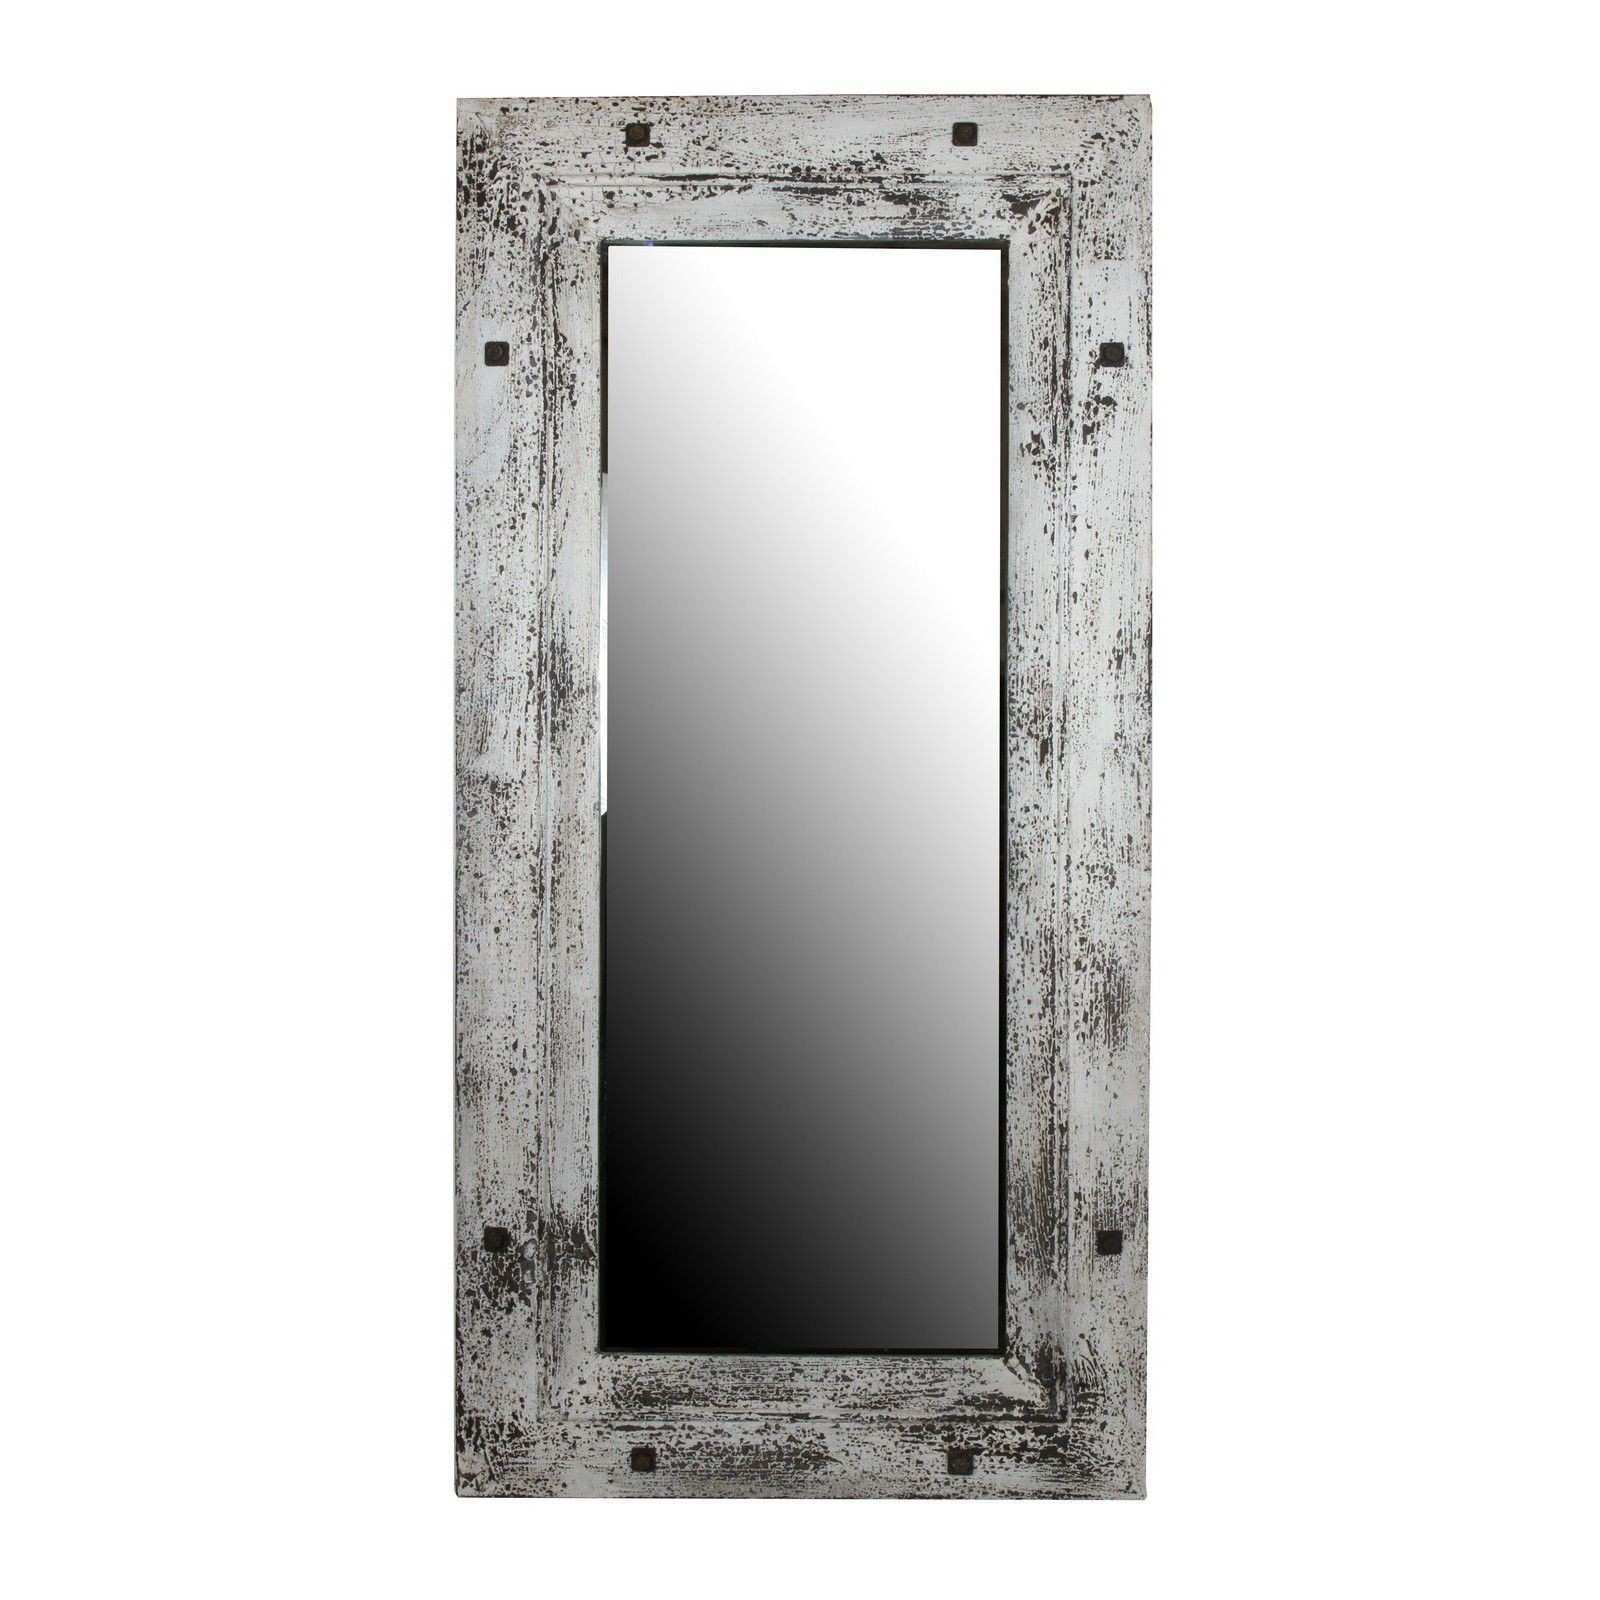 The distressed wood frame of this mirror adds a sense of rustic